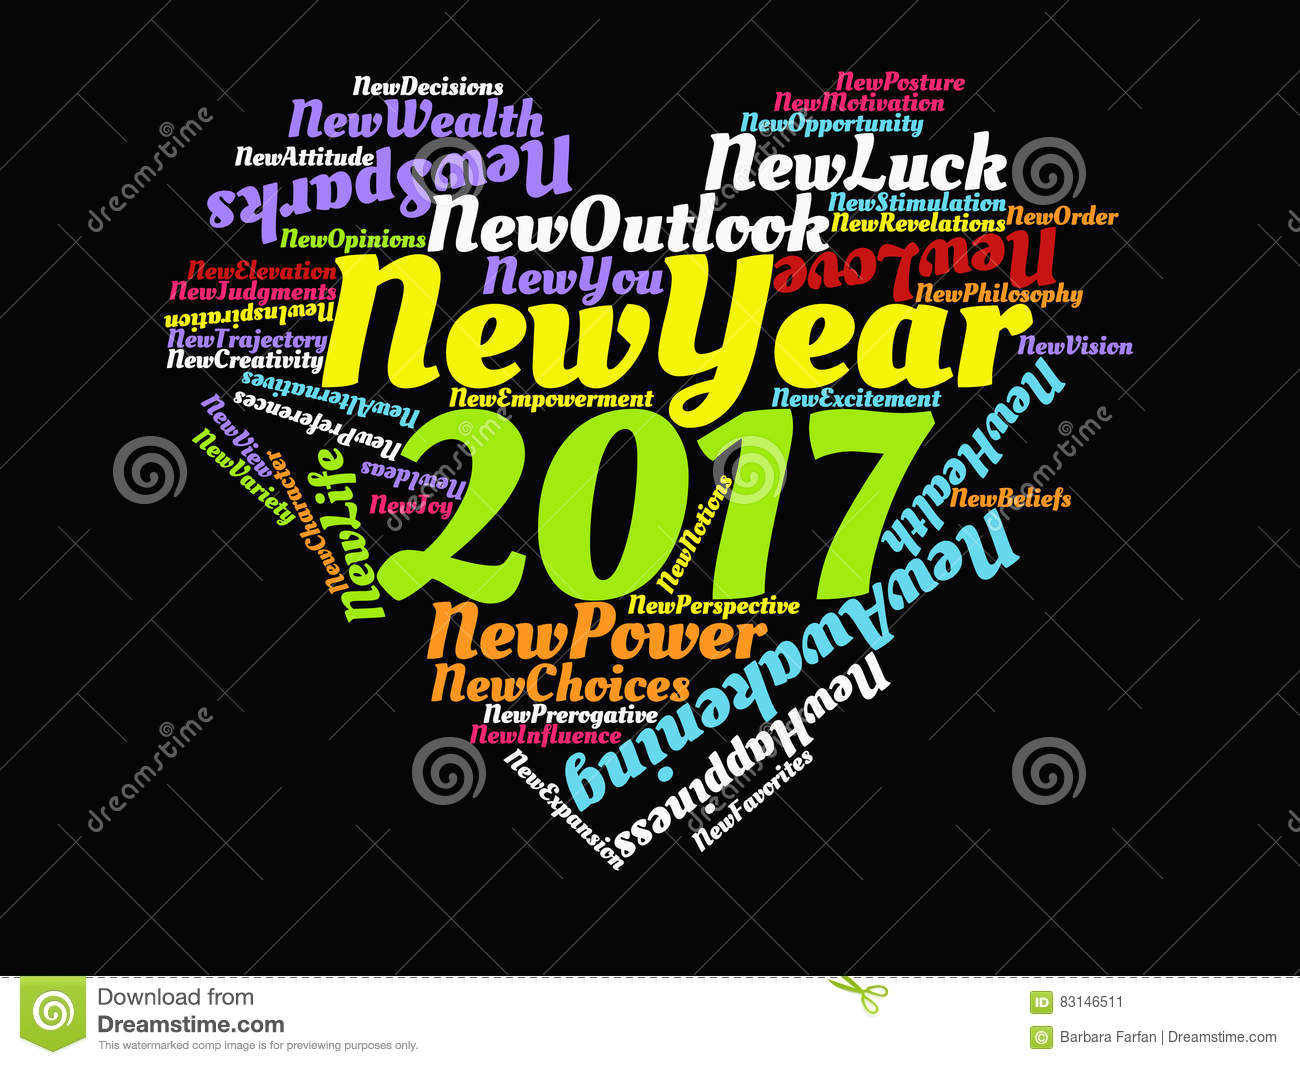 2017 Happy New Year Motivational Quotes And Inspirational Sayings     Download 2017 Happy New Year Motivational Quotes And Inspirational Sayings  Heart Graphic Artwork Poster In Rainbow